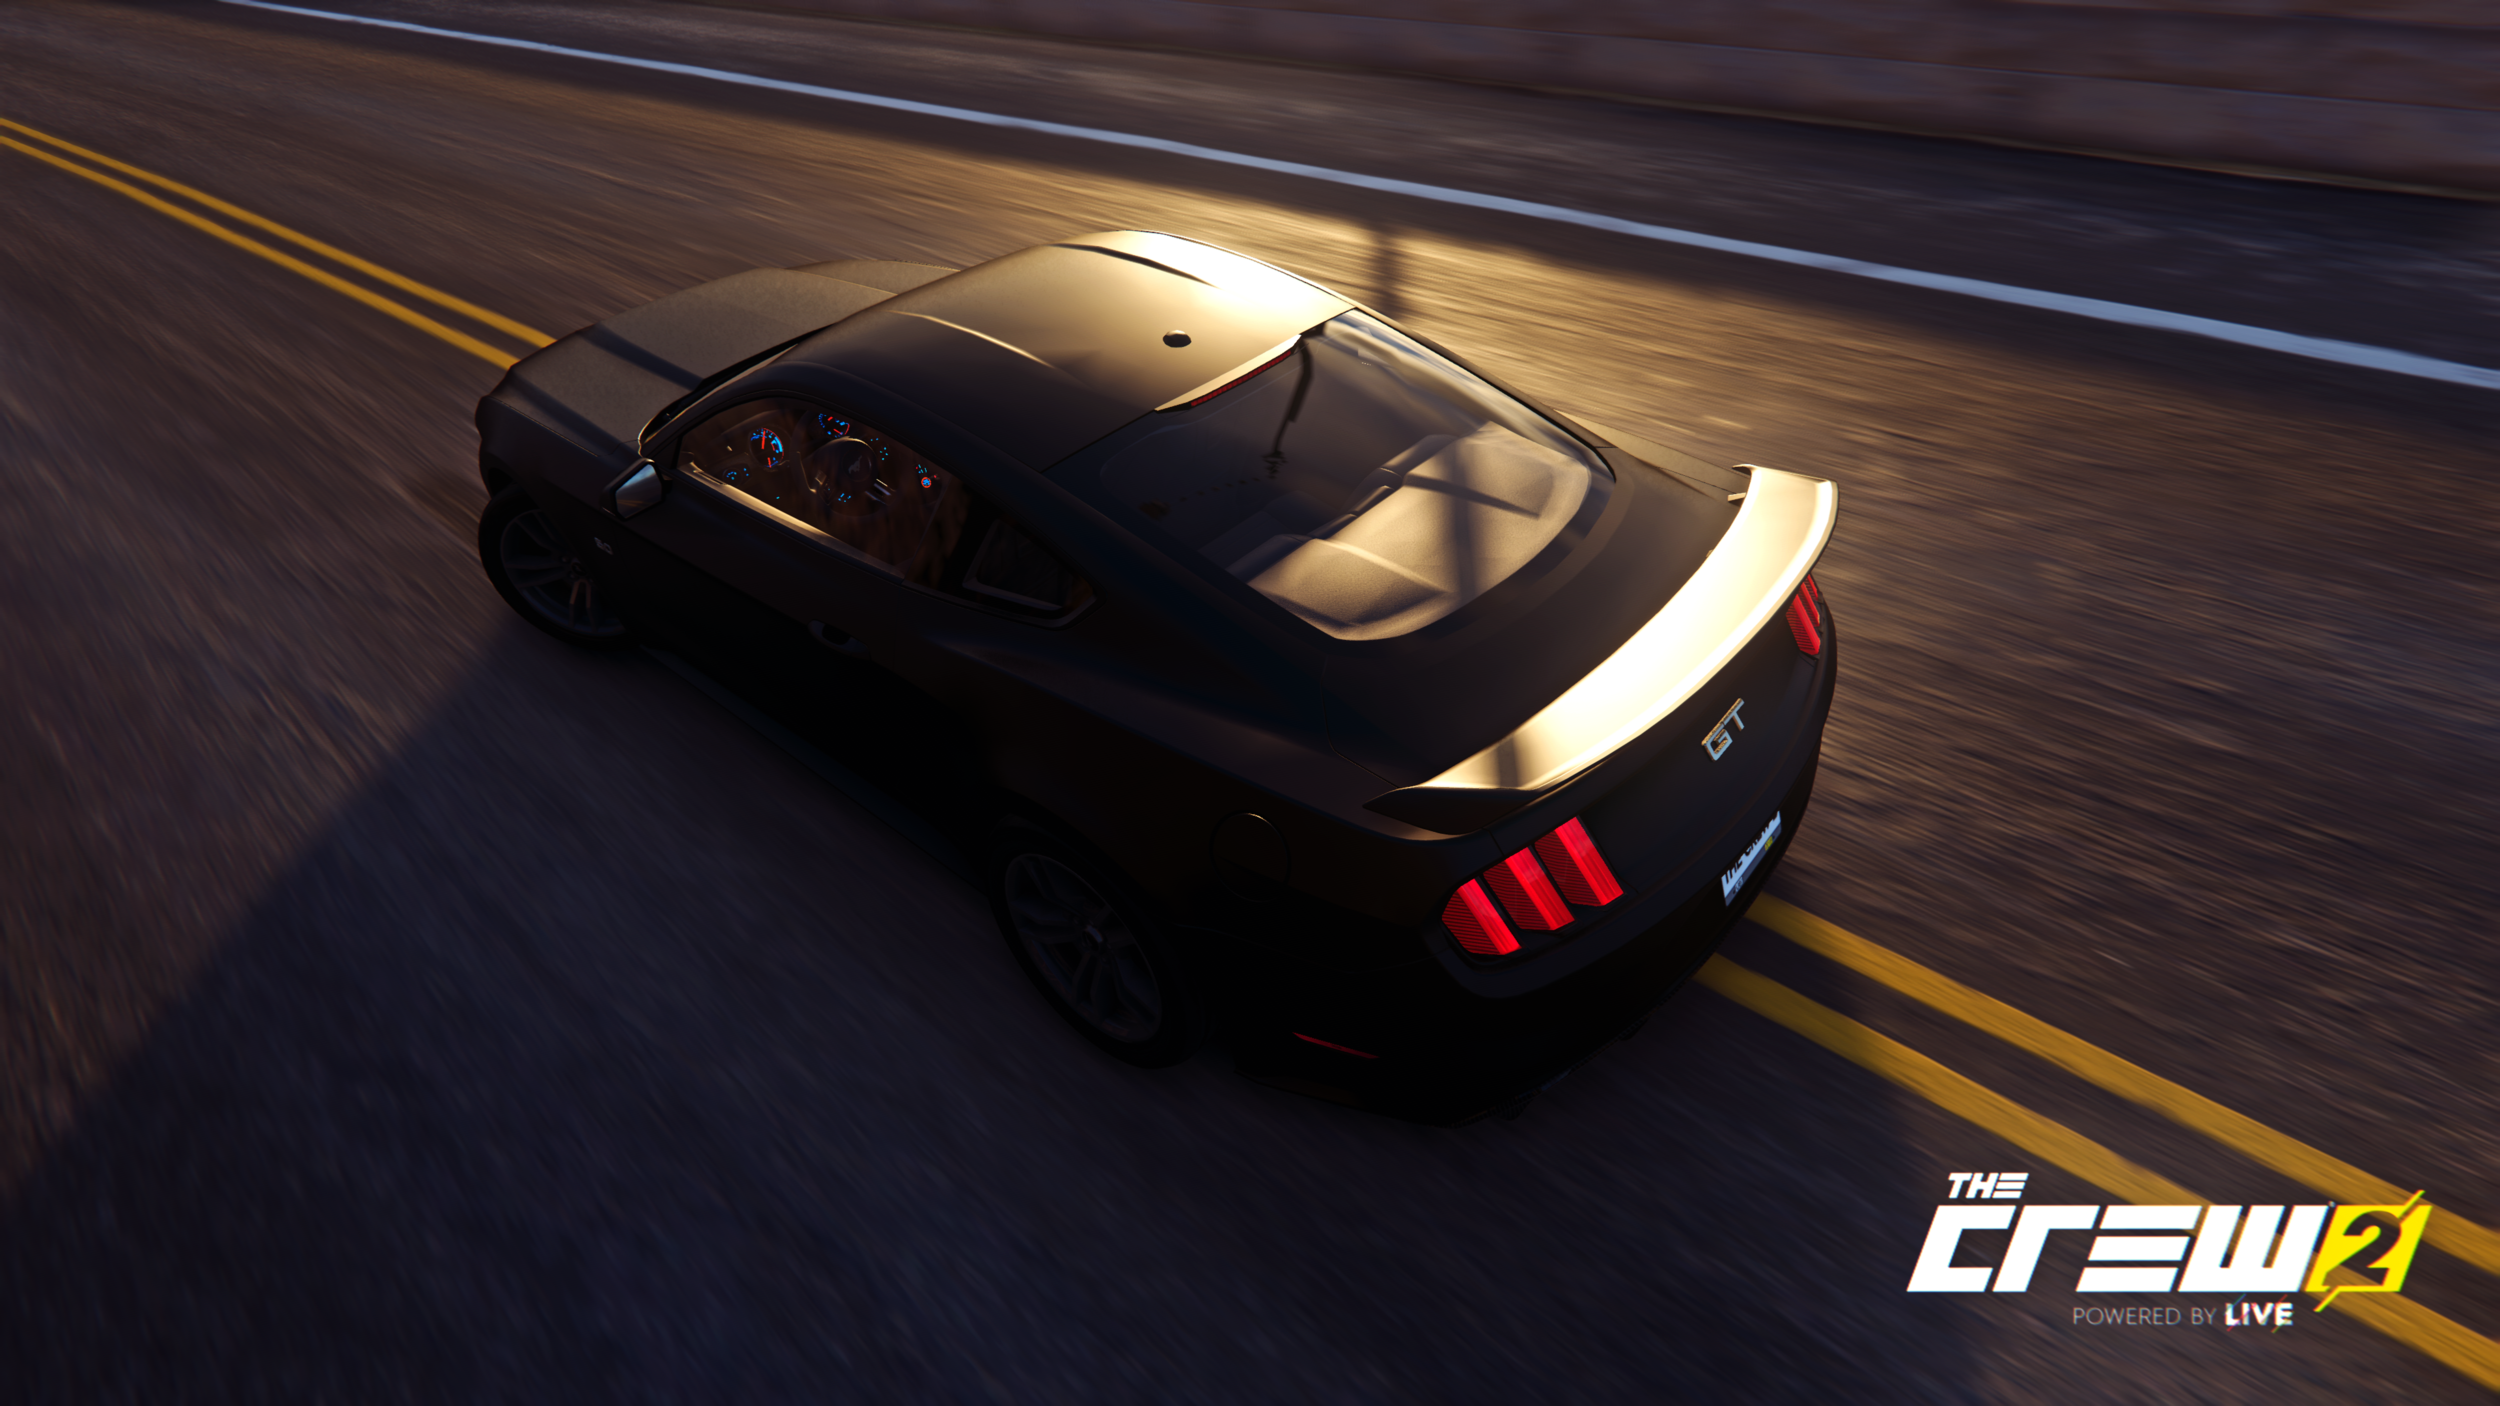 TheCrew2_2019-04-11_20-47-49.png